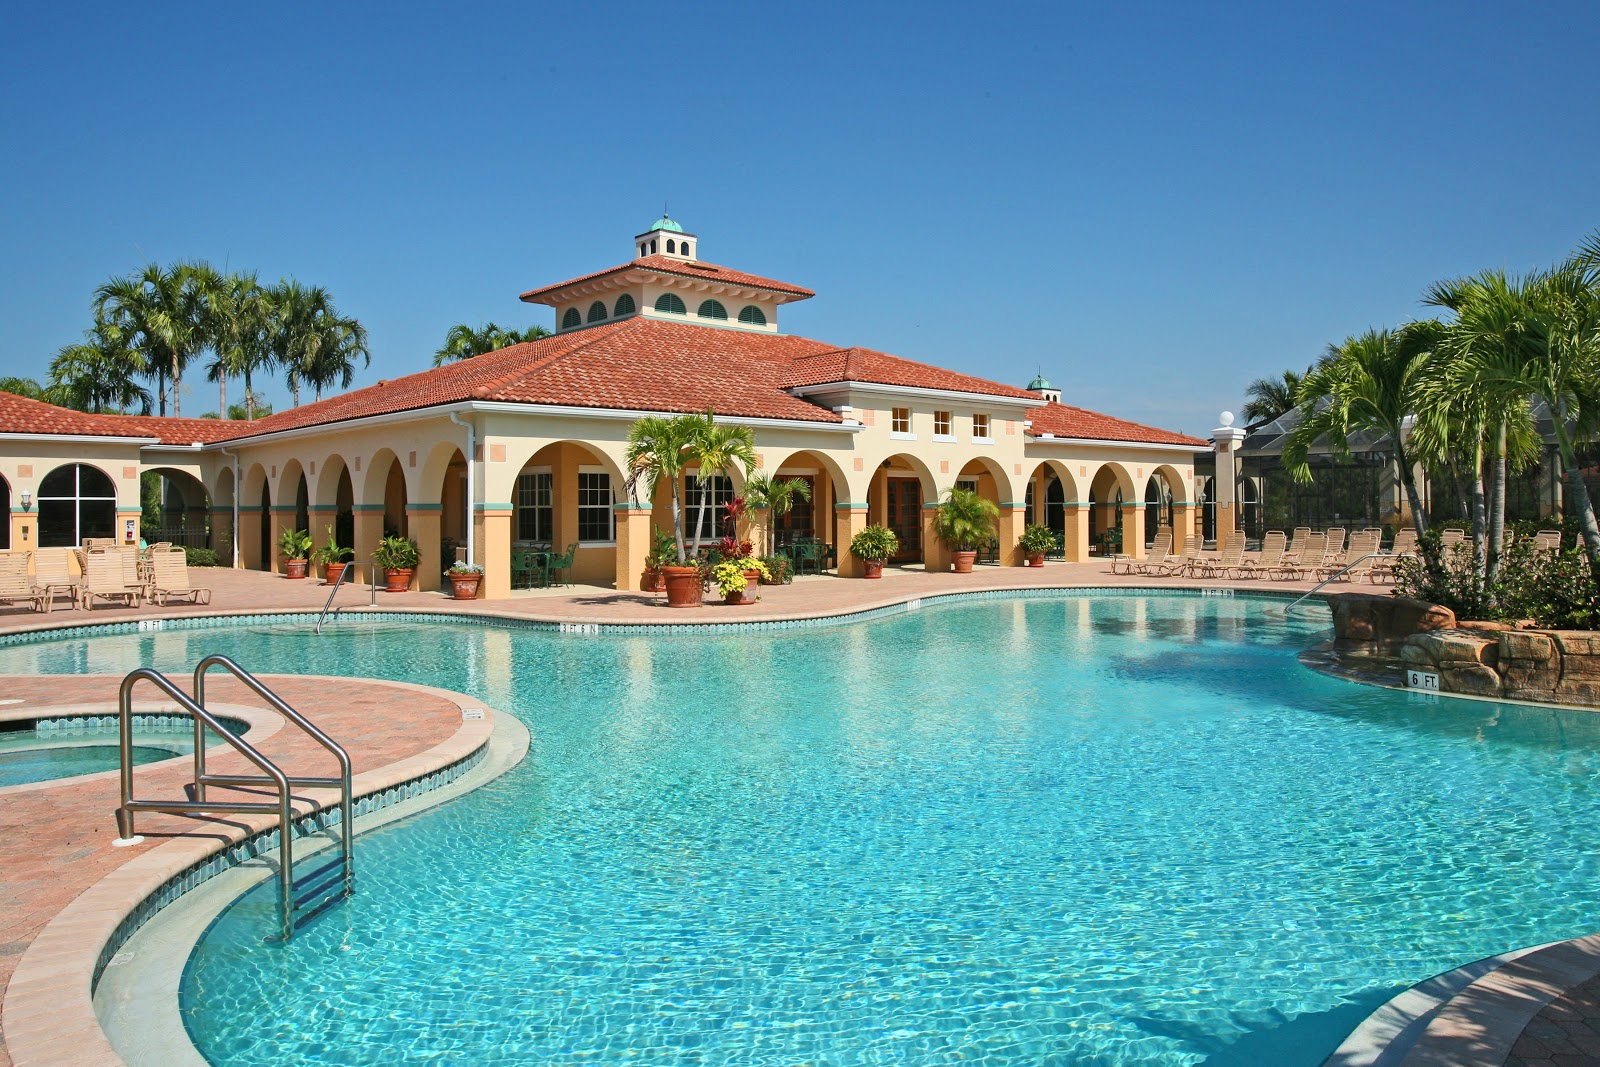 Rental Condos In Bonita Beach Florida